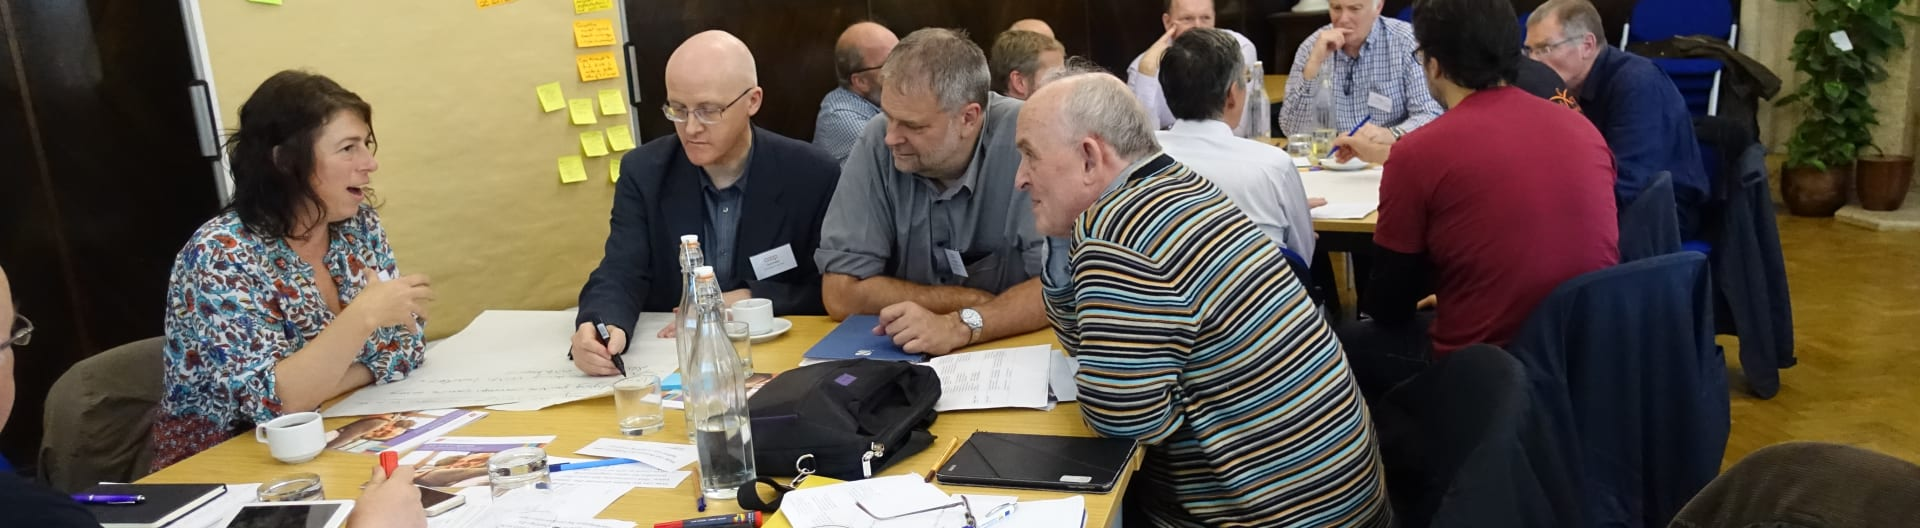 Participants in discussion during a workshop